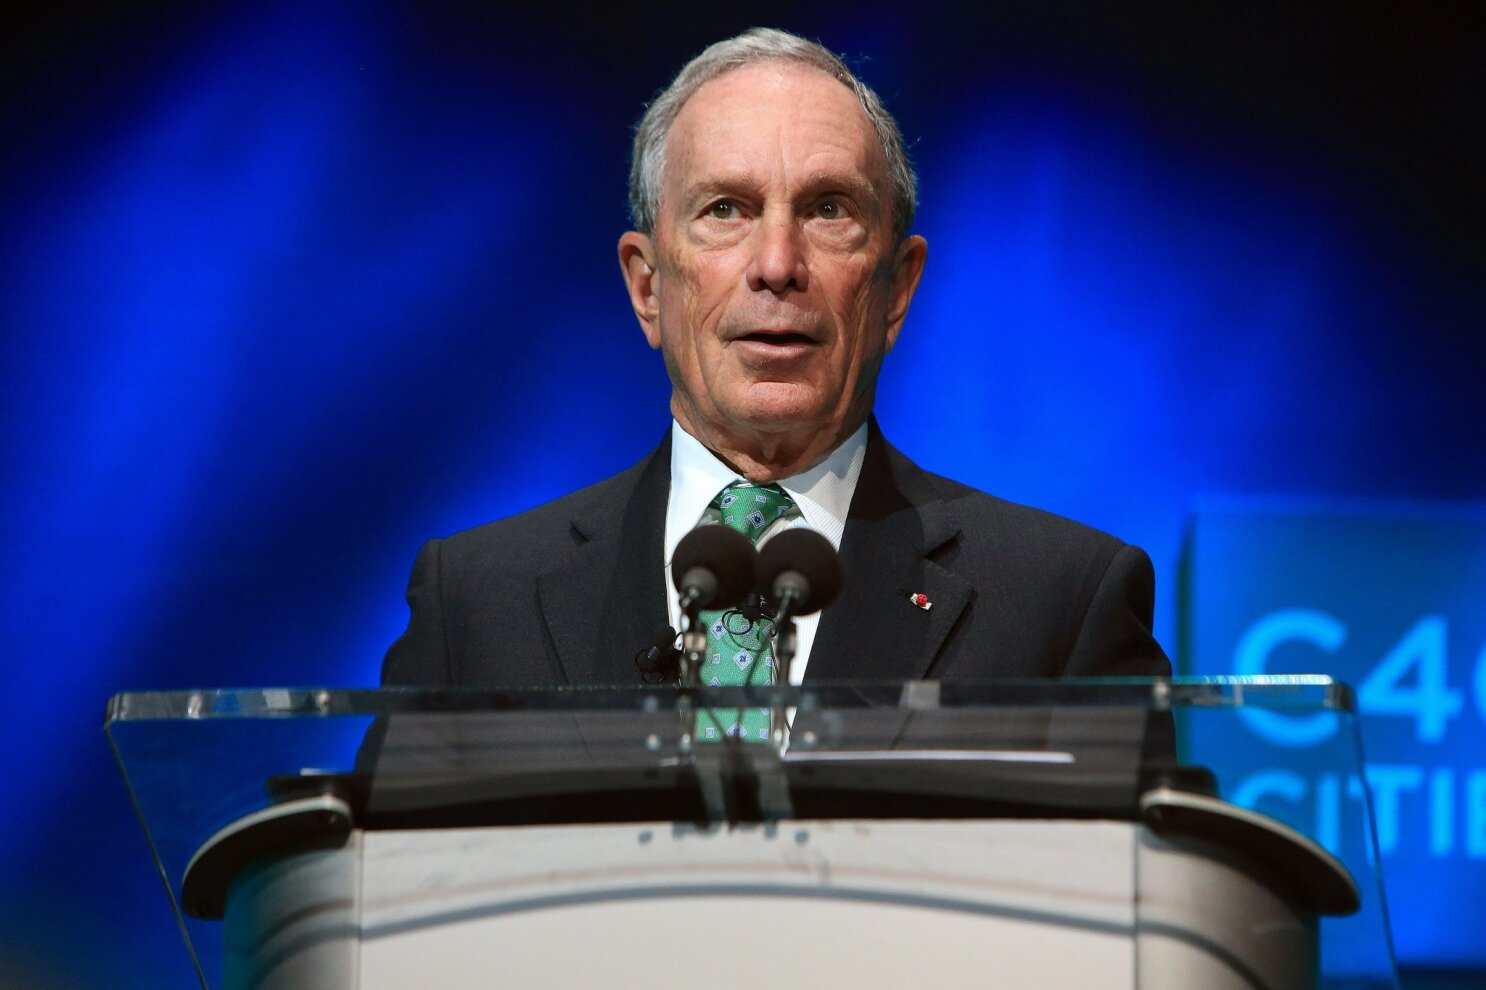 Readers React: Thoughts on a Michael Bloomberg candidacy